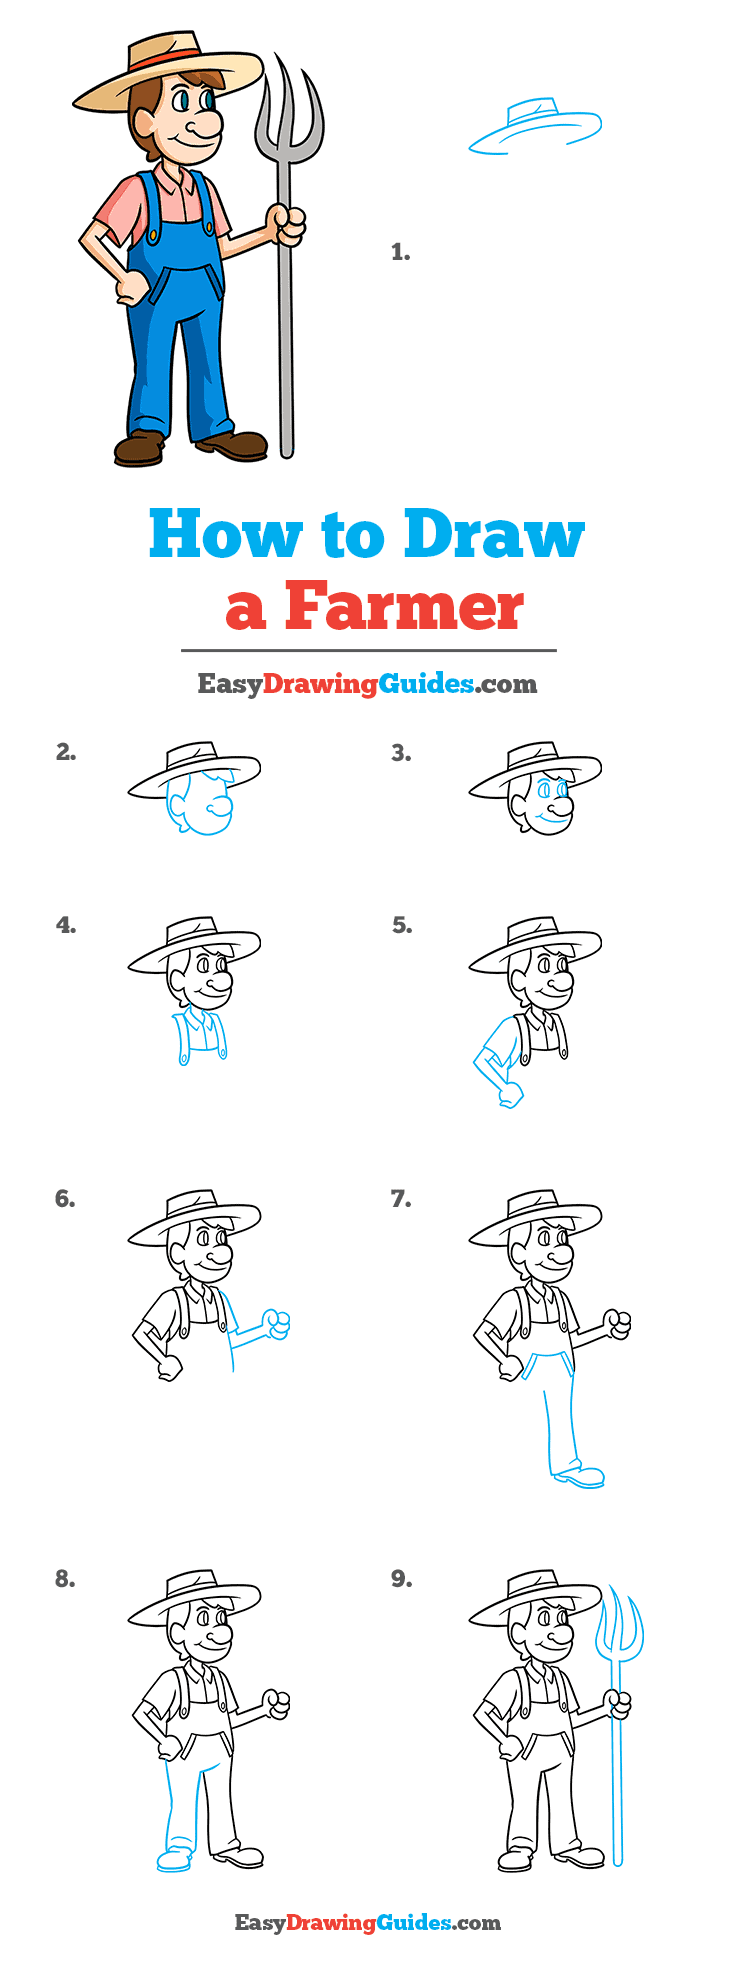 How to Draw a Farmer Step by Step Tutorial Image